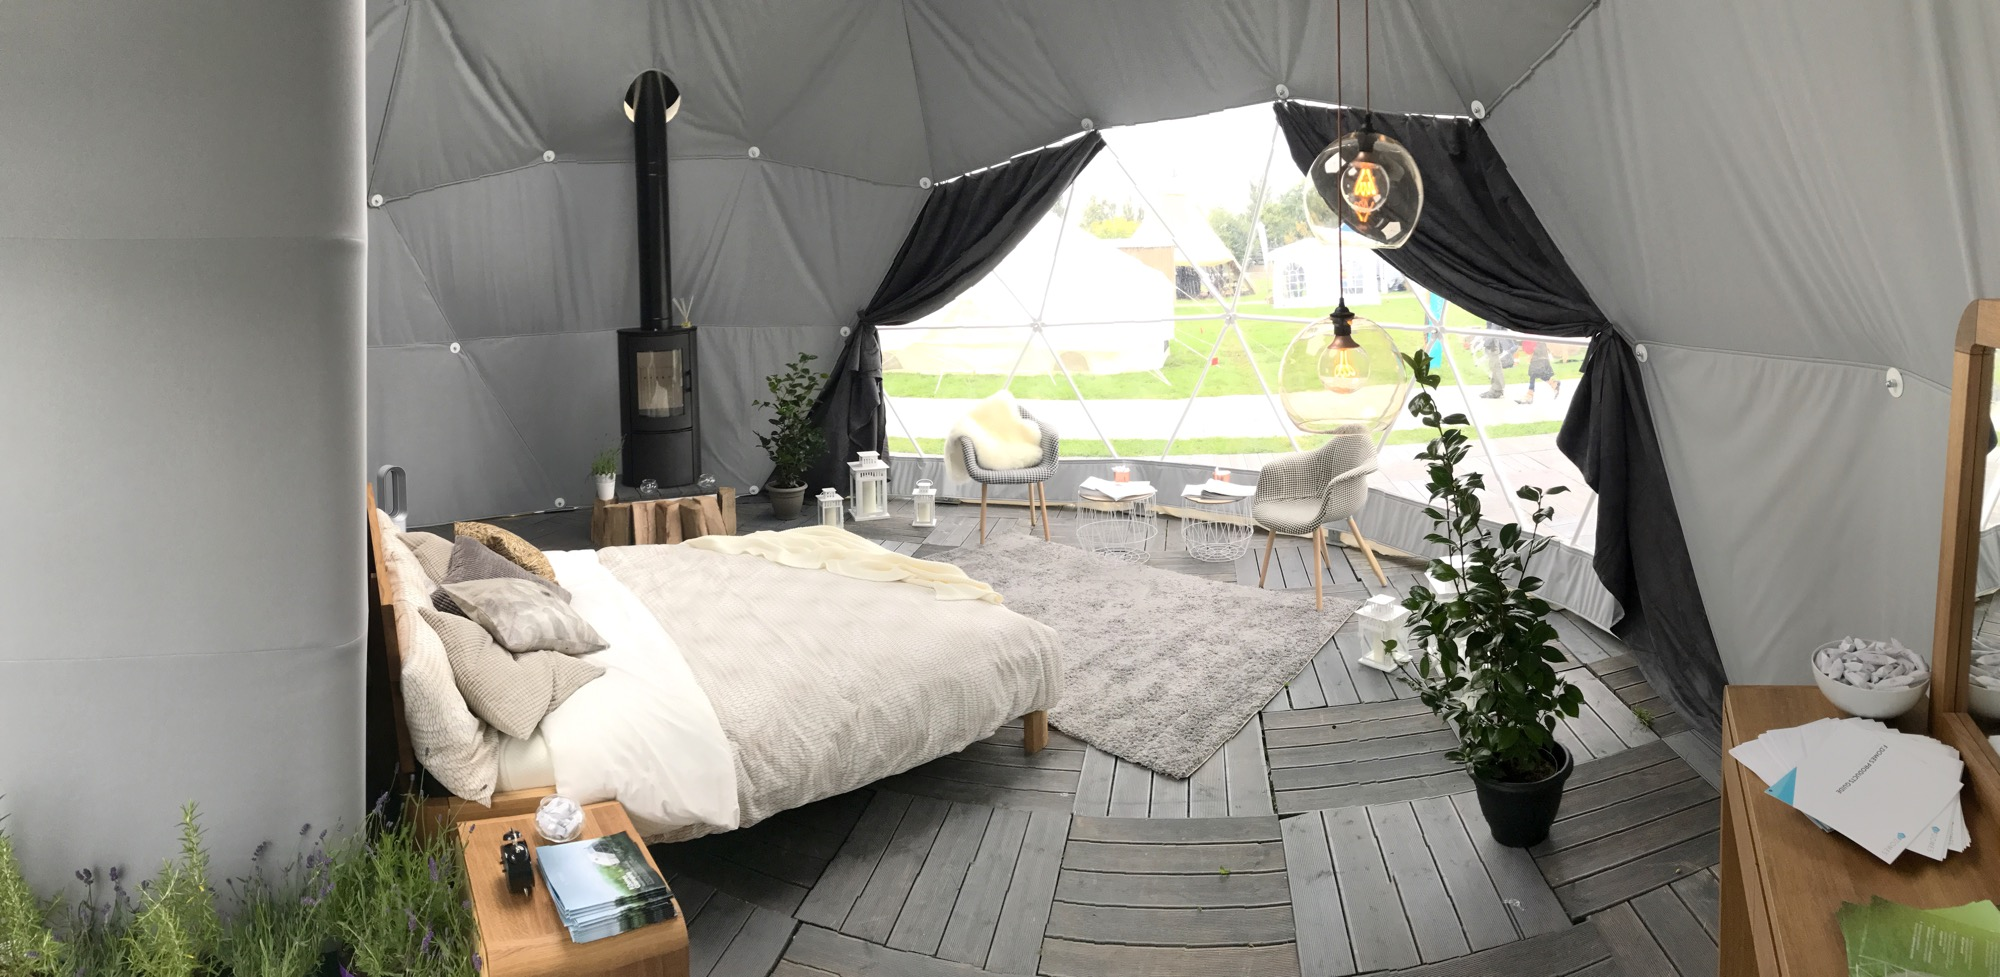 F.Dome.40 Glamping Show.jpg